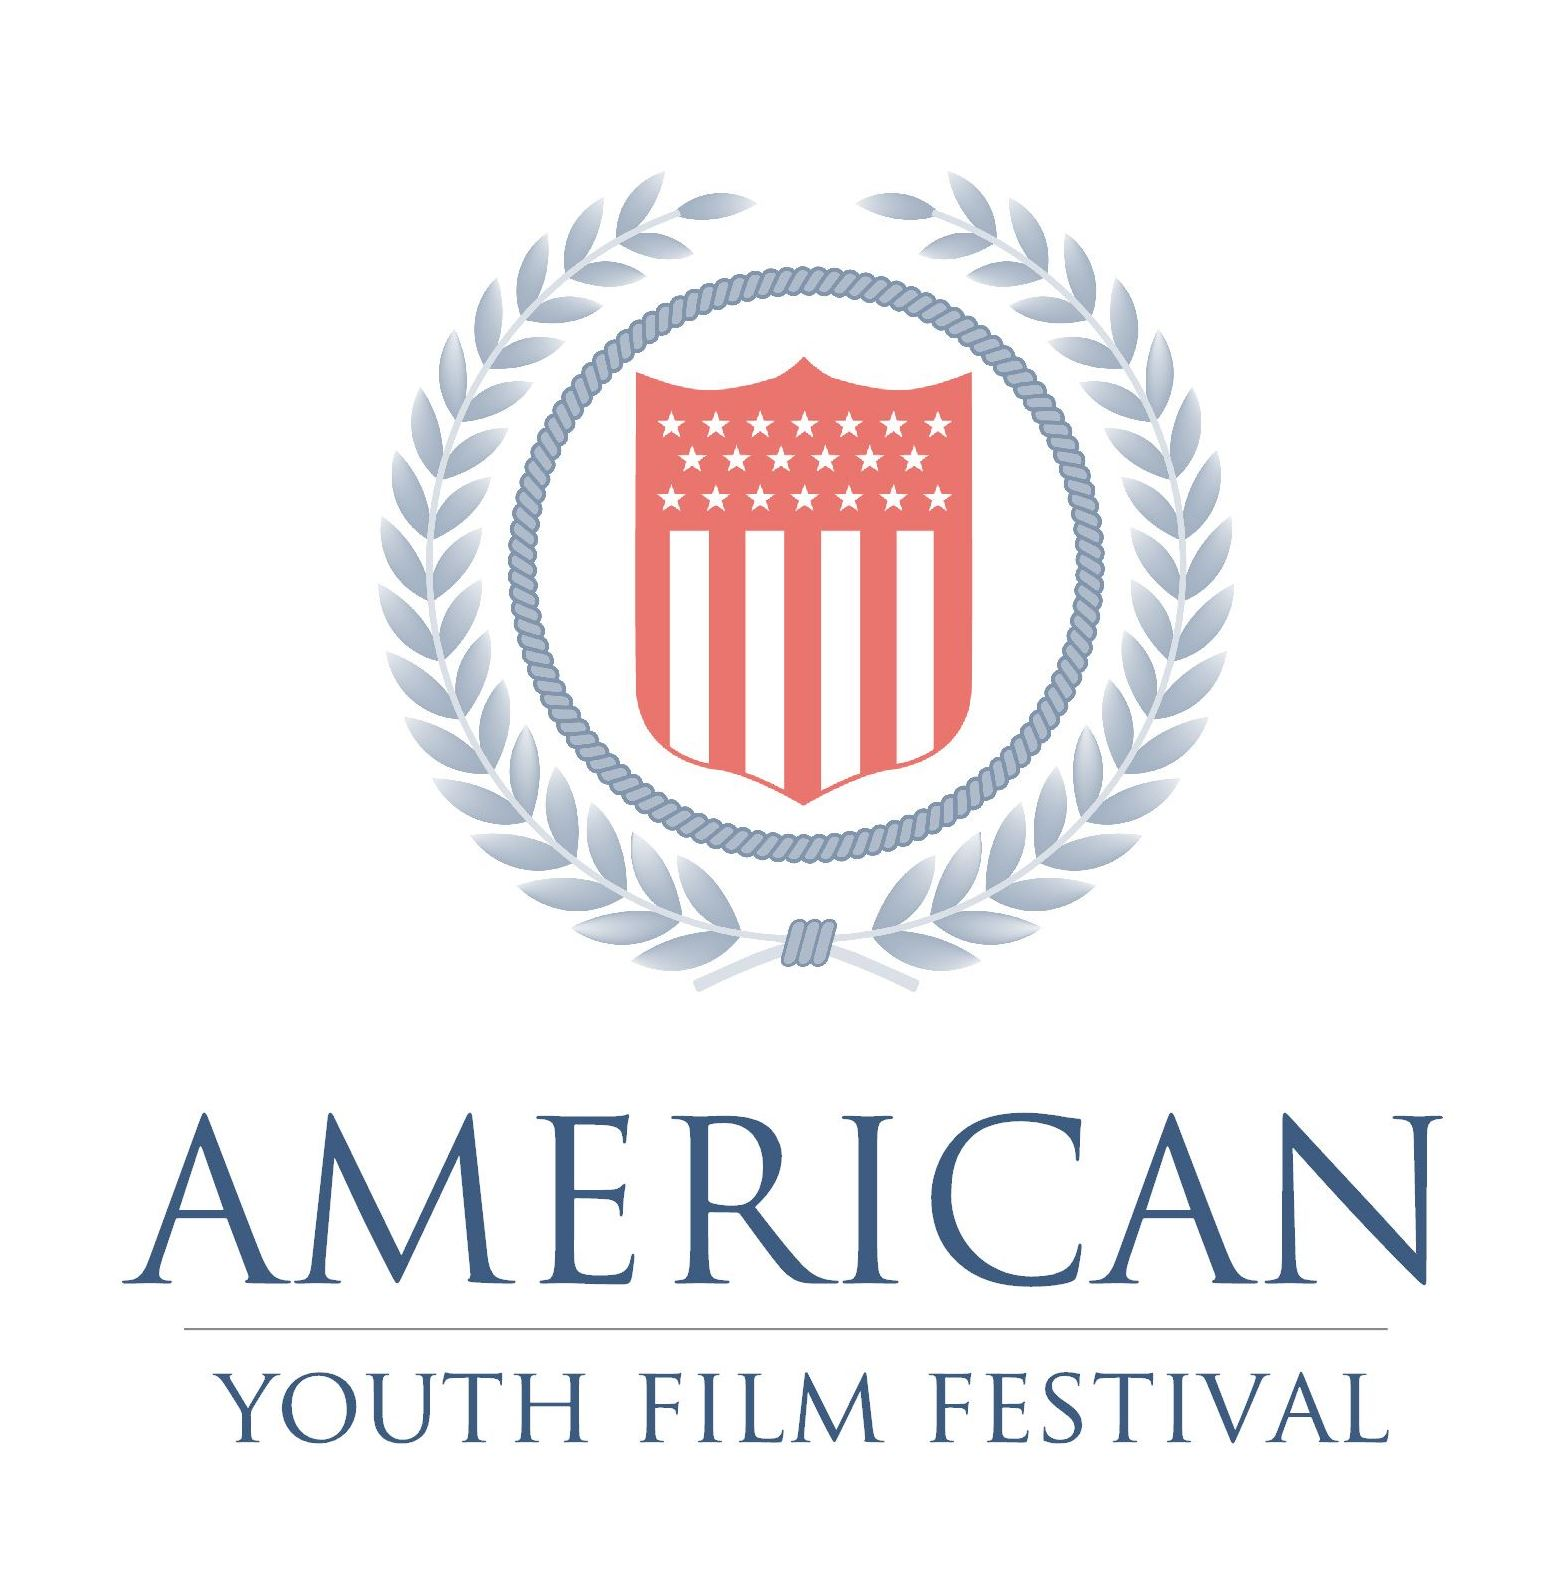 American Youth Film Festival Merchandise